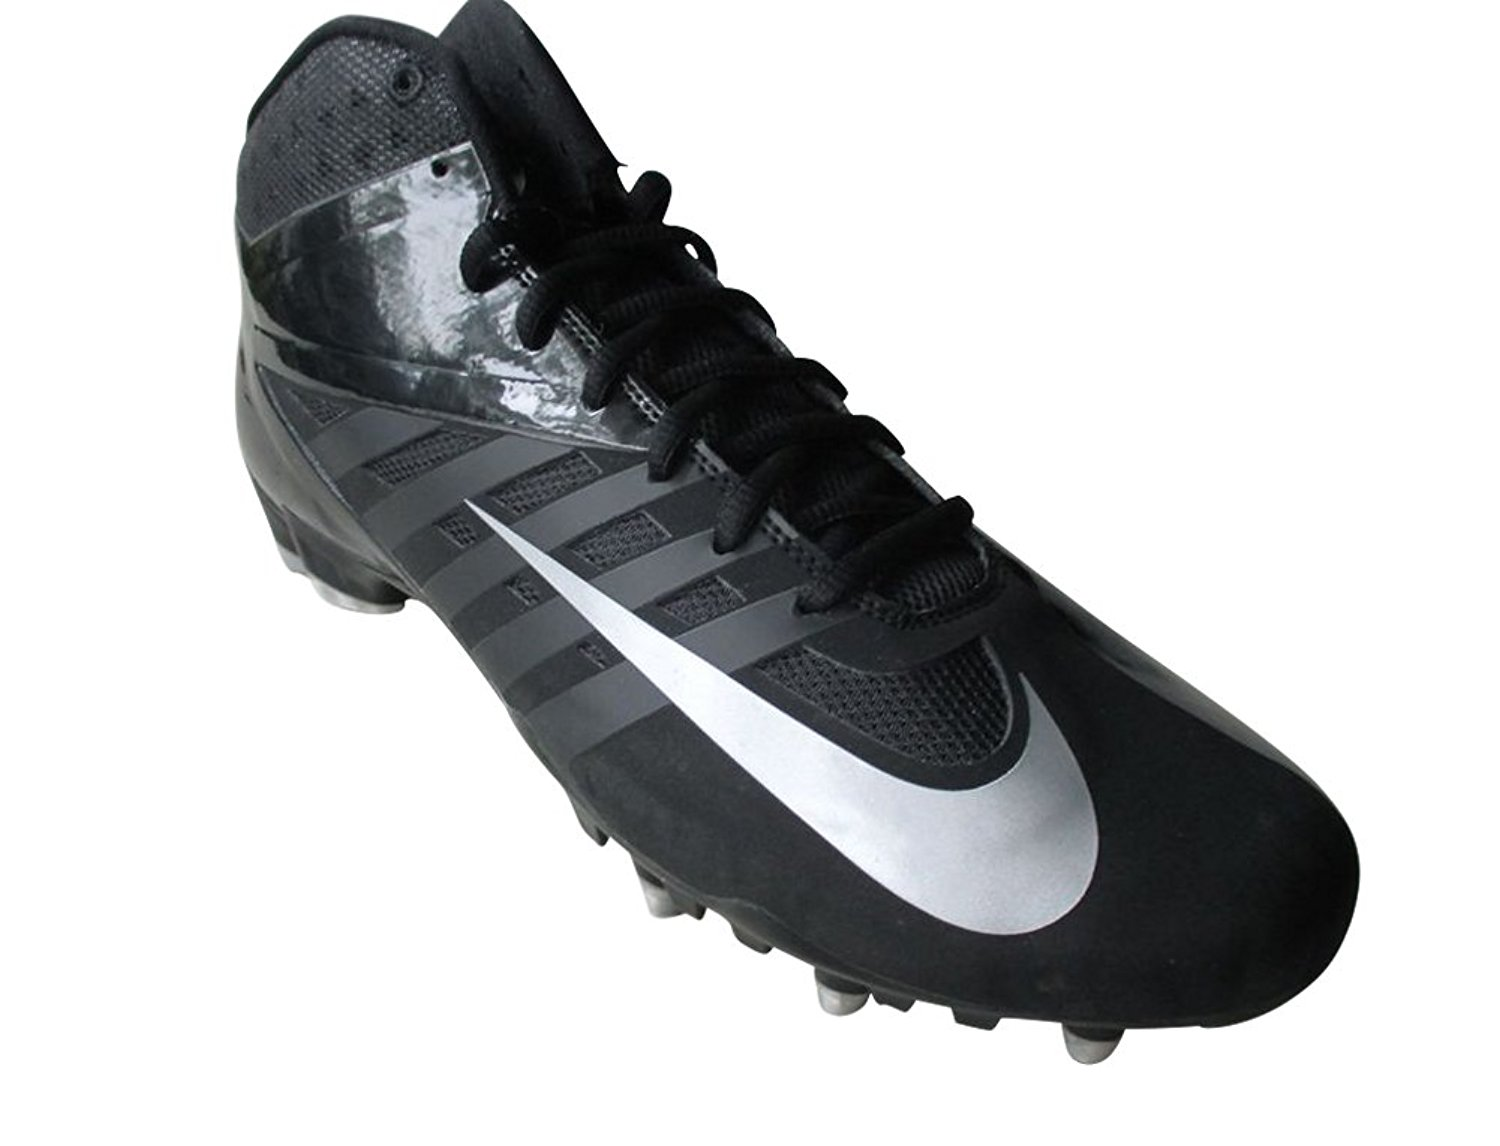 finest selection 5fcad 50f9b Get Quotations · Nike Men s Vapor Pro 3 4 TD Football Cleats